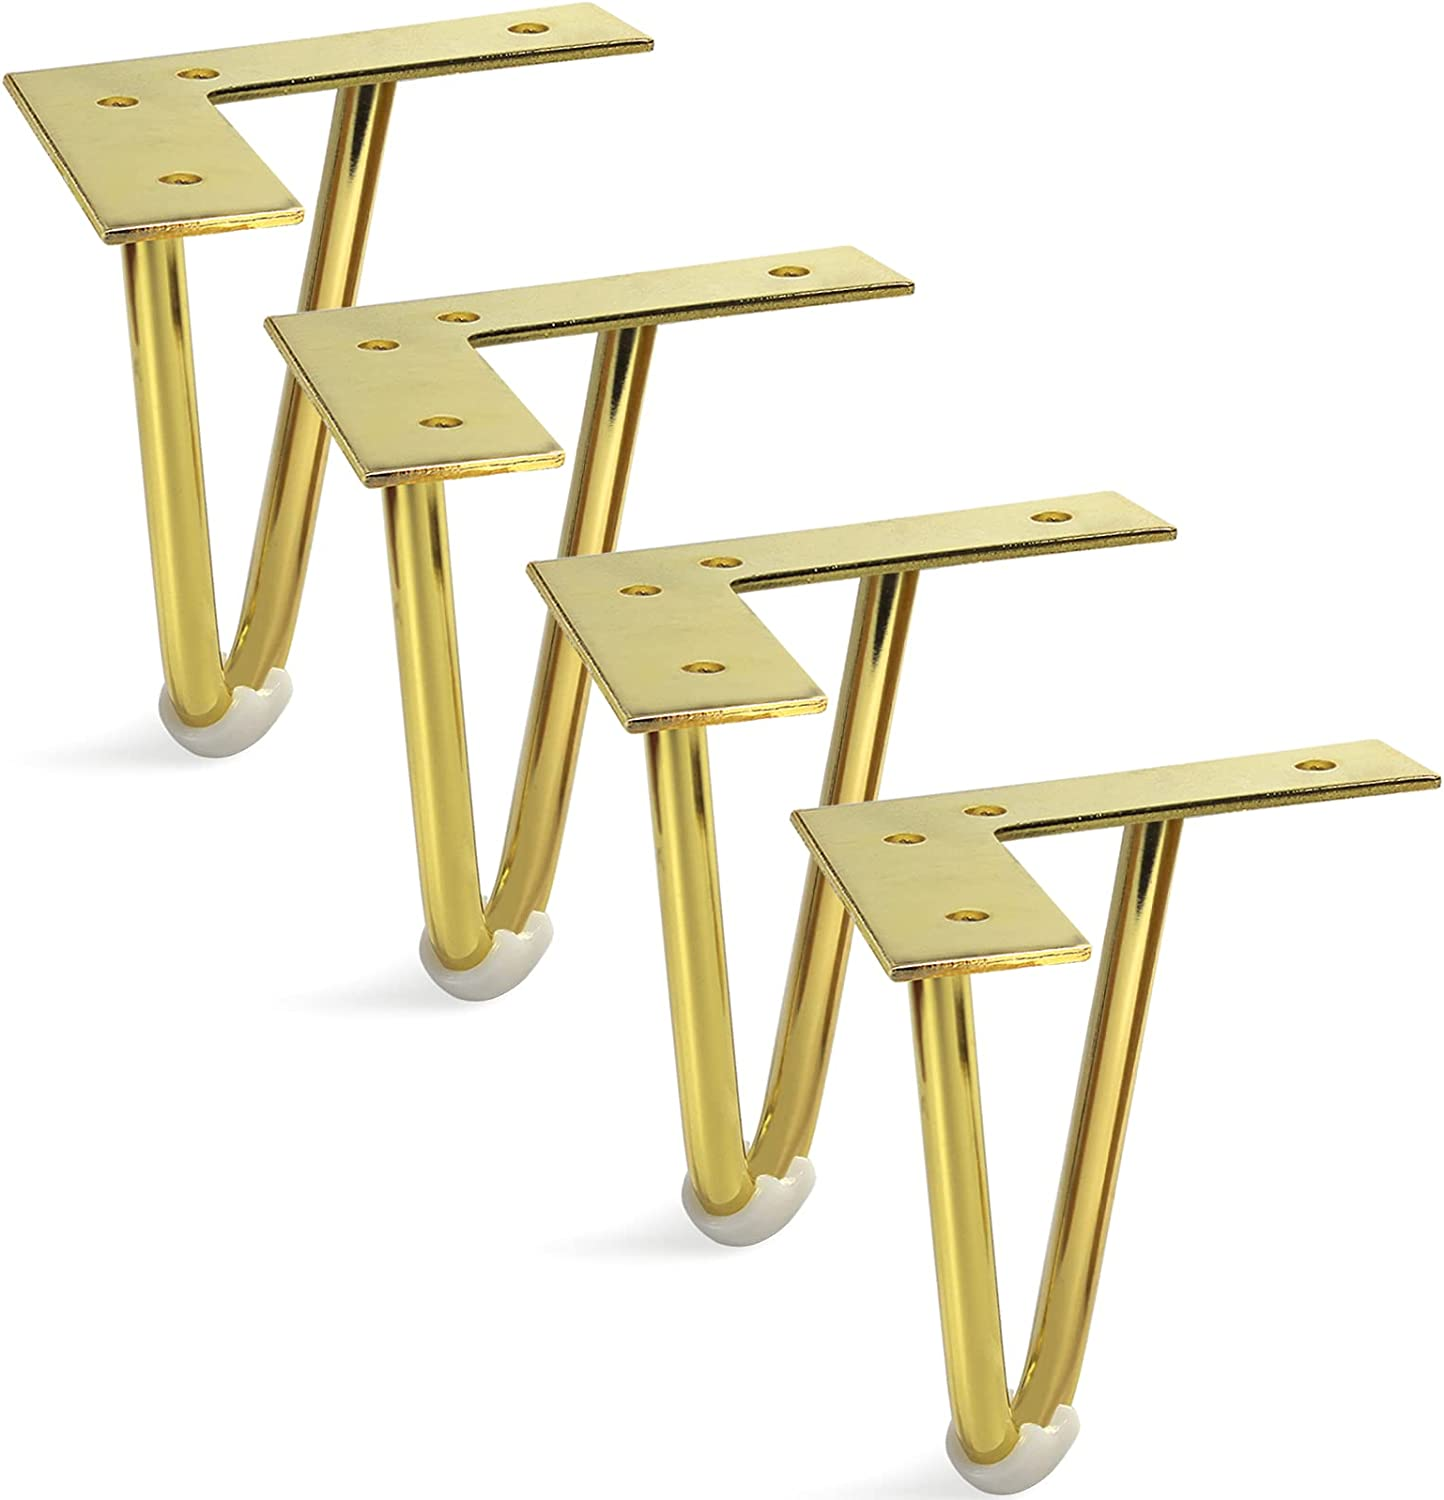 Sopicoz Gold Hairpin Furniture Legs, Heavy Duty Cabinet Legs Metal Home DIY Projects for Dresser, TV Stand (5 inch)